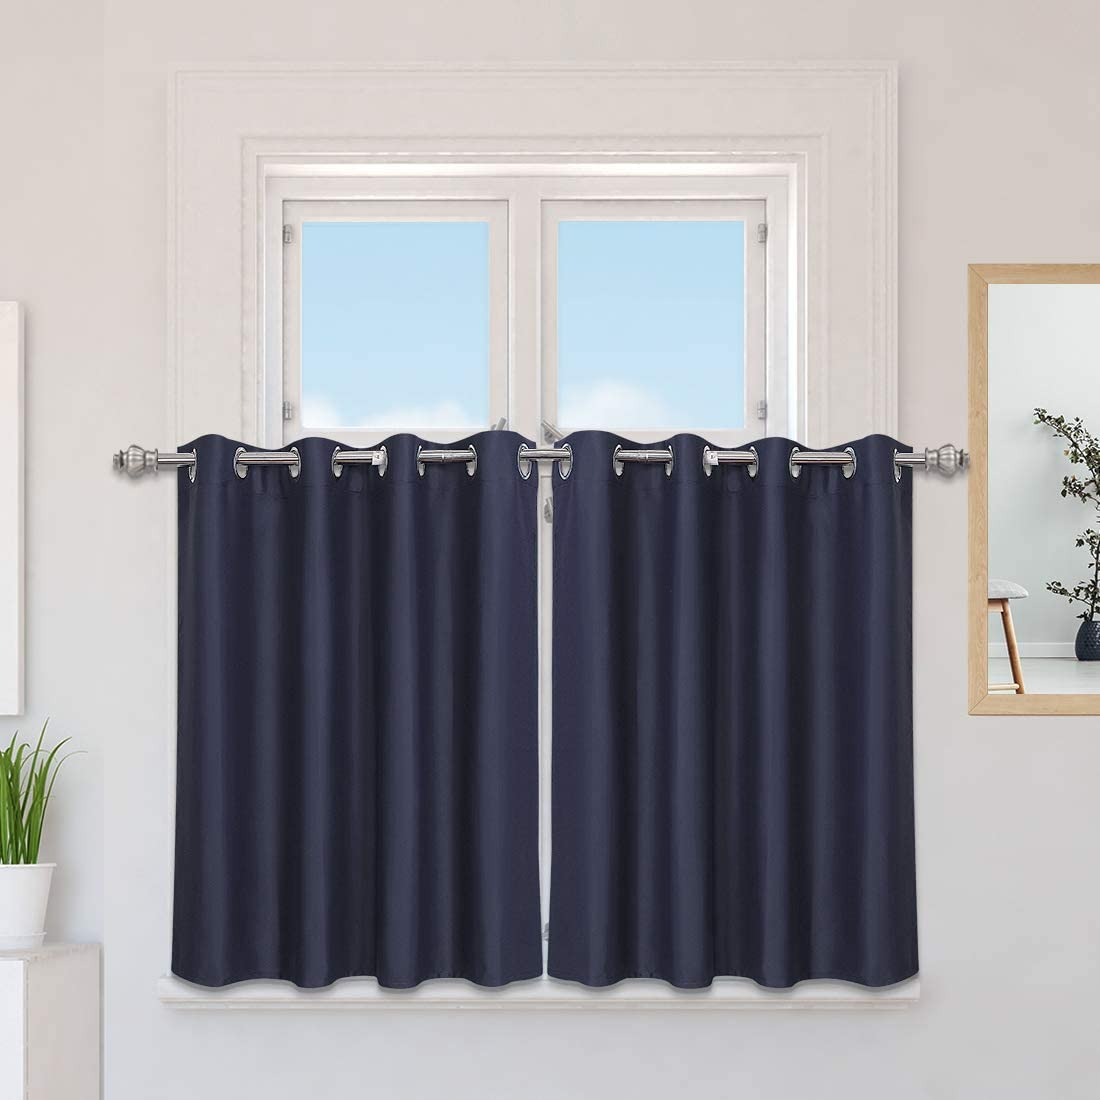 PiccoCasa Small Window Curtain Panel Rod Pocket Valance Solid Thermal Insulated Curtain Tier Drape Short Kitchen Curtains, 2 Panels Navy Blue 52 x 36 Inch